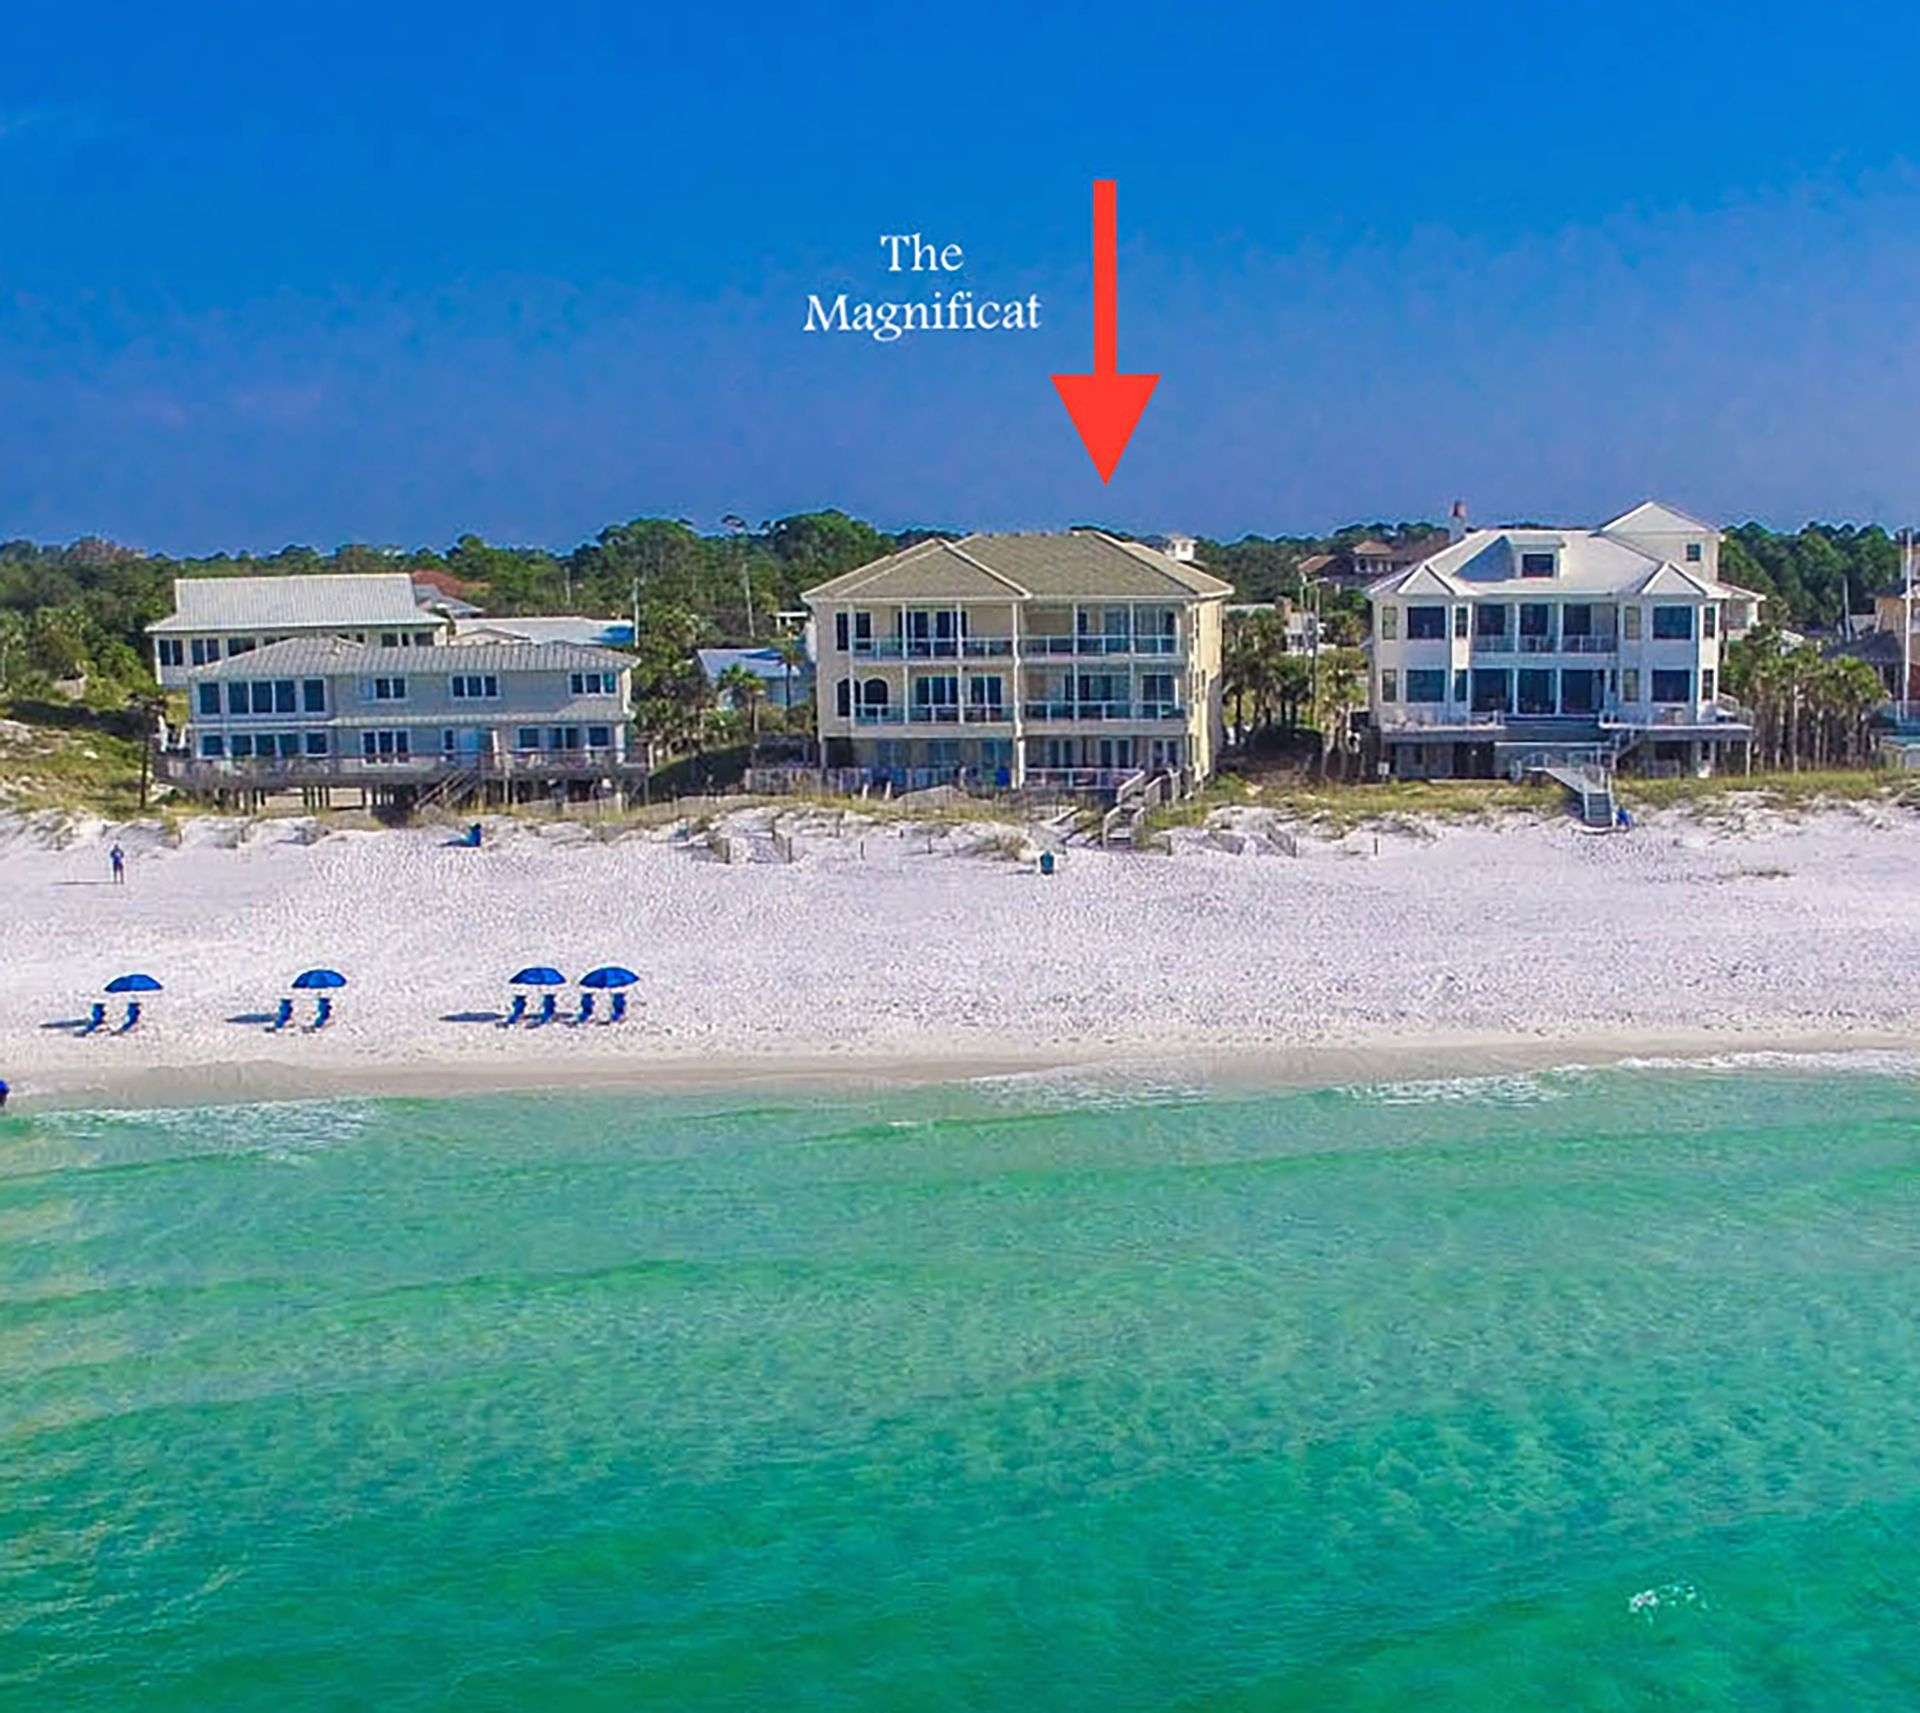 Panhandle Beach House Rentals: Find Your Rental